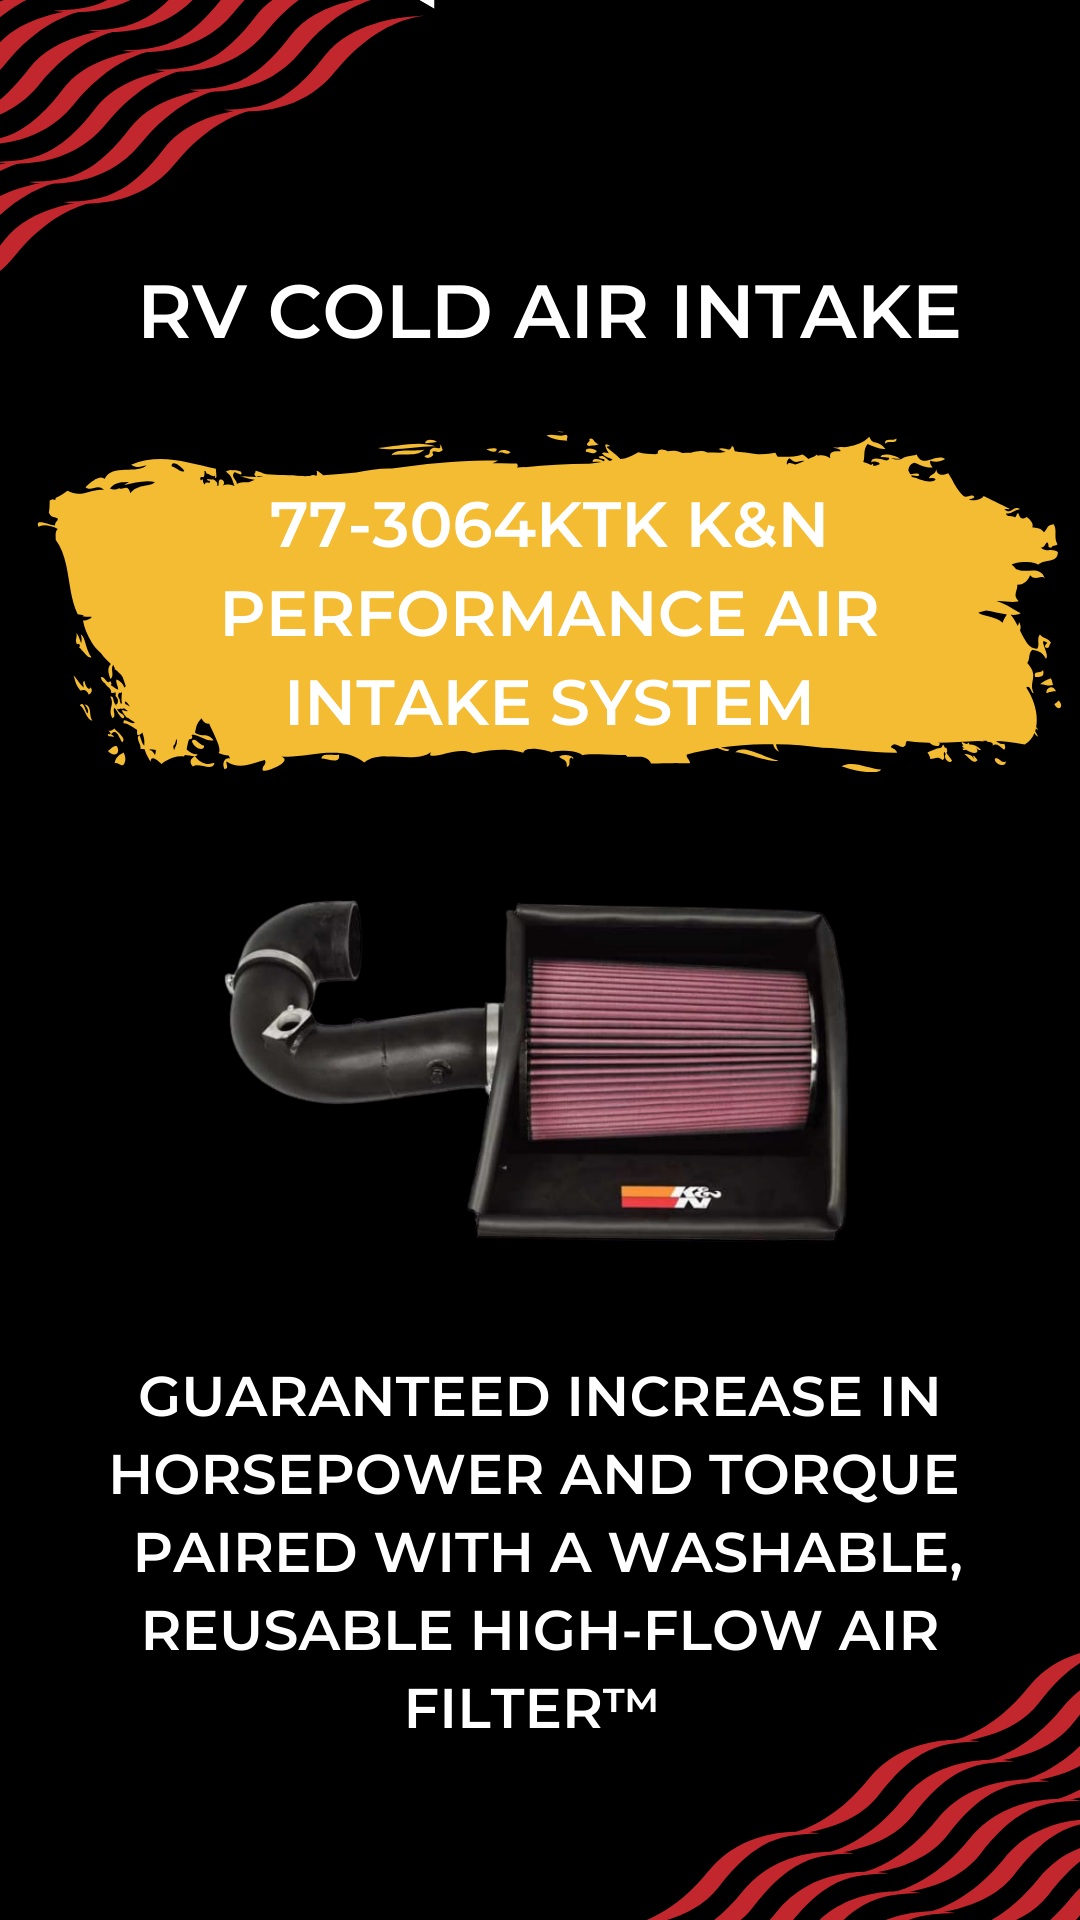 Gain a guaranteed increase in horsepower and torque with a